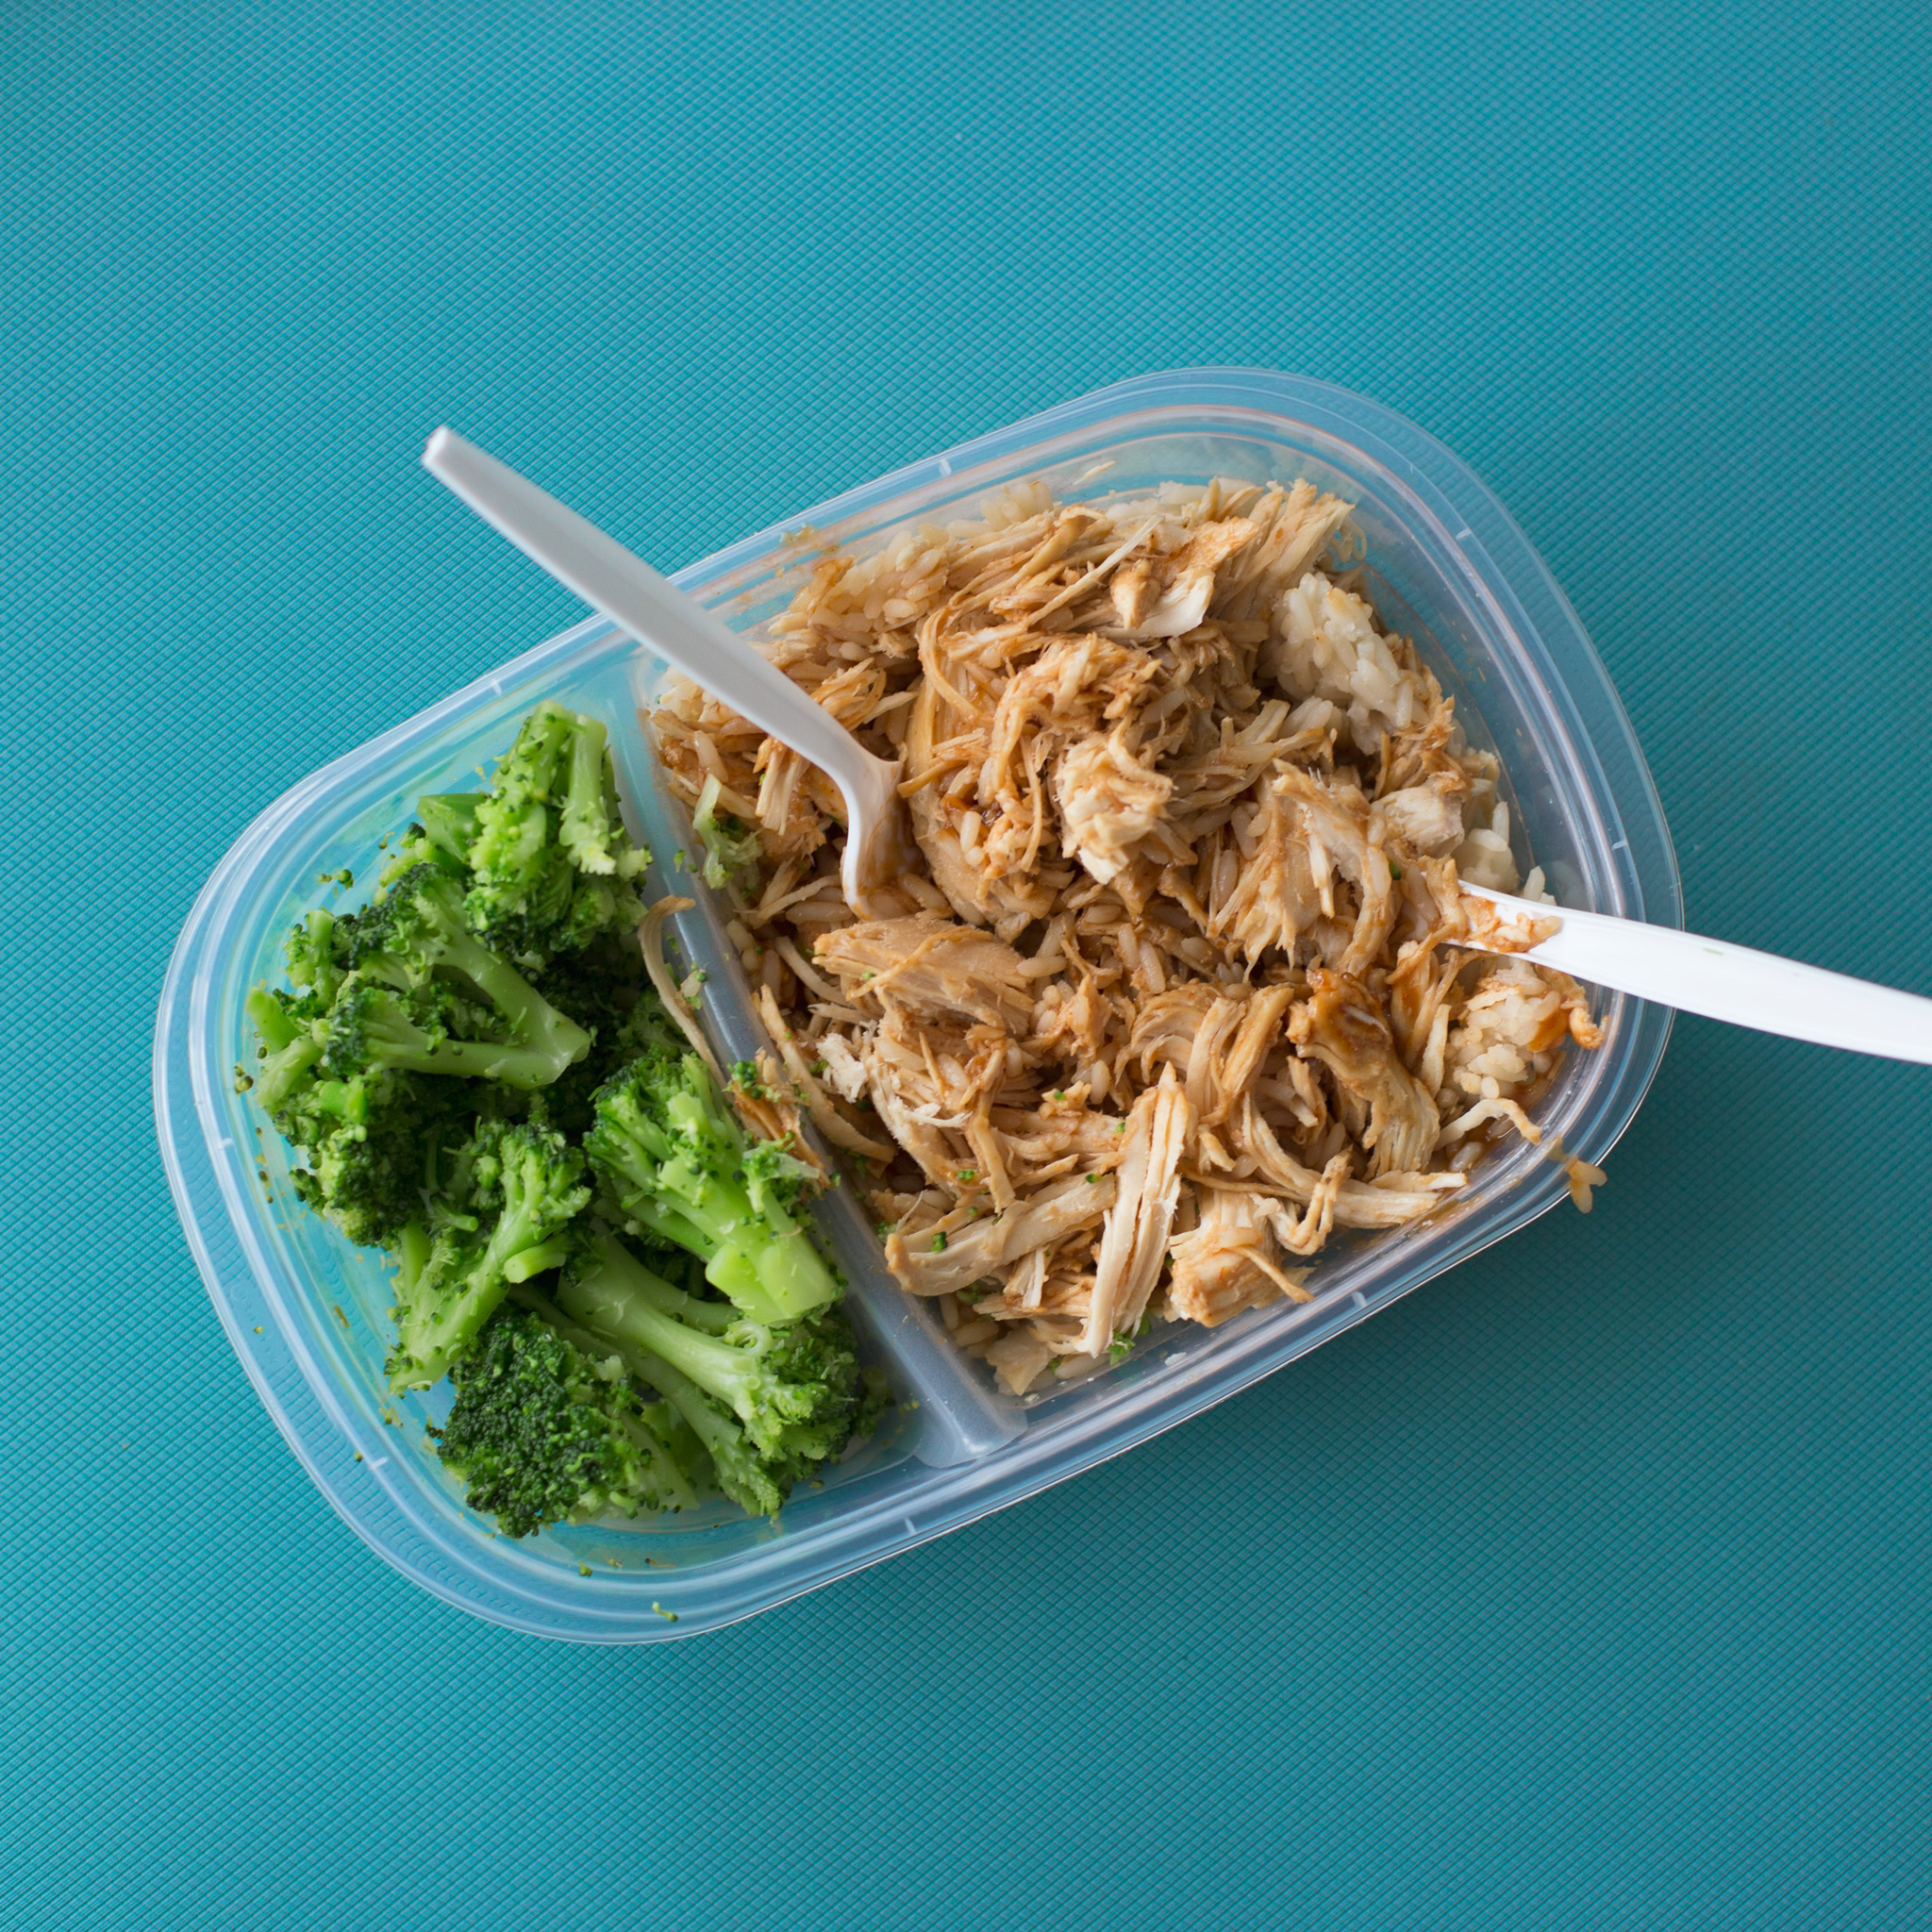 Canva - Tuna Salad on Transparent Lunch Pack